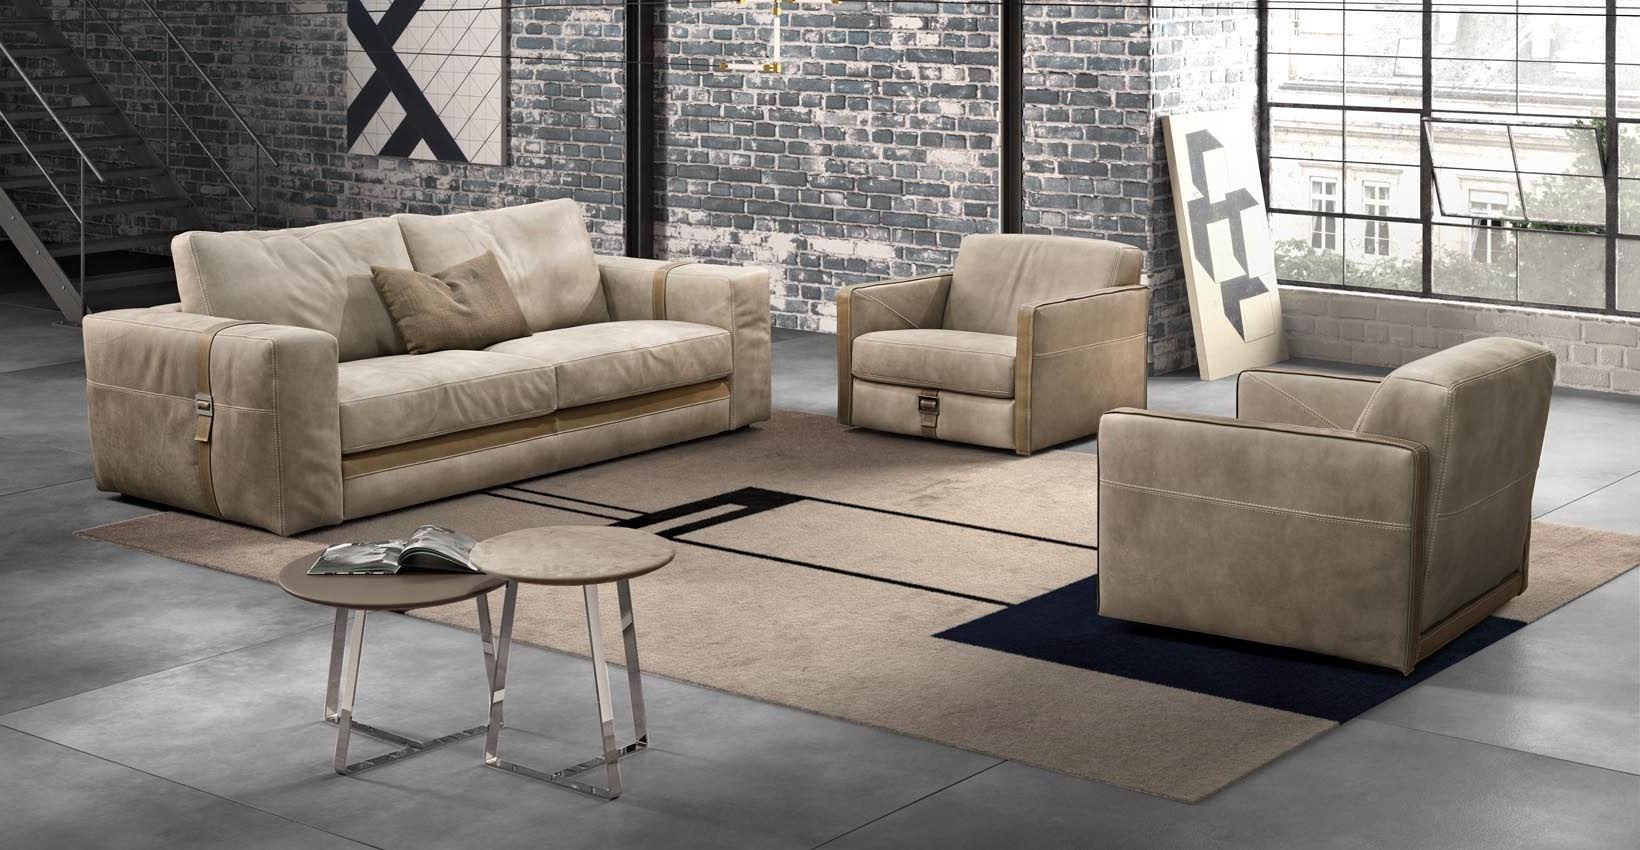 Well Liked Richmond Sofas Regarding Contemporary Sofa / Leather / 2 Seater / Beige – Richmond – Gamma (View 20 of 20)